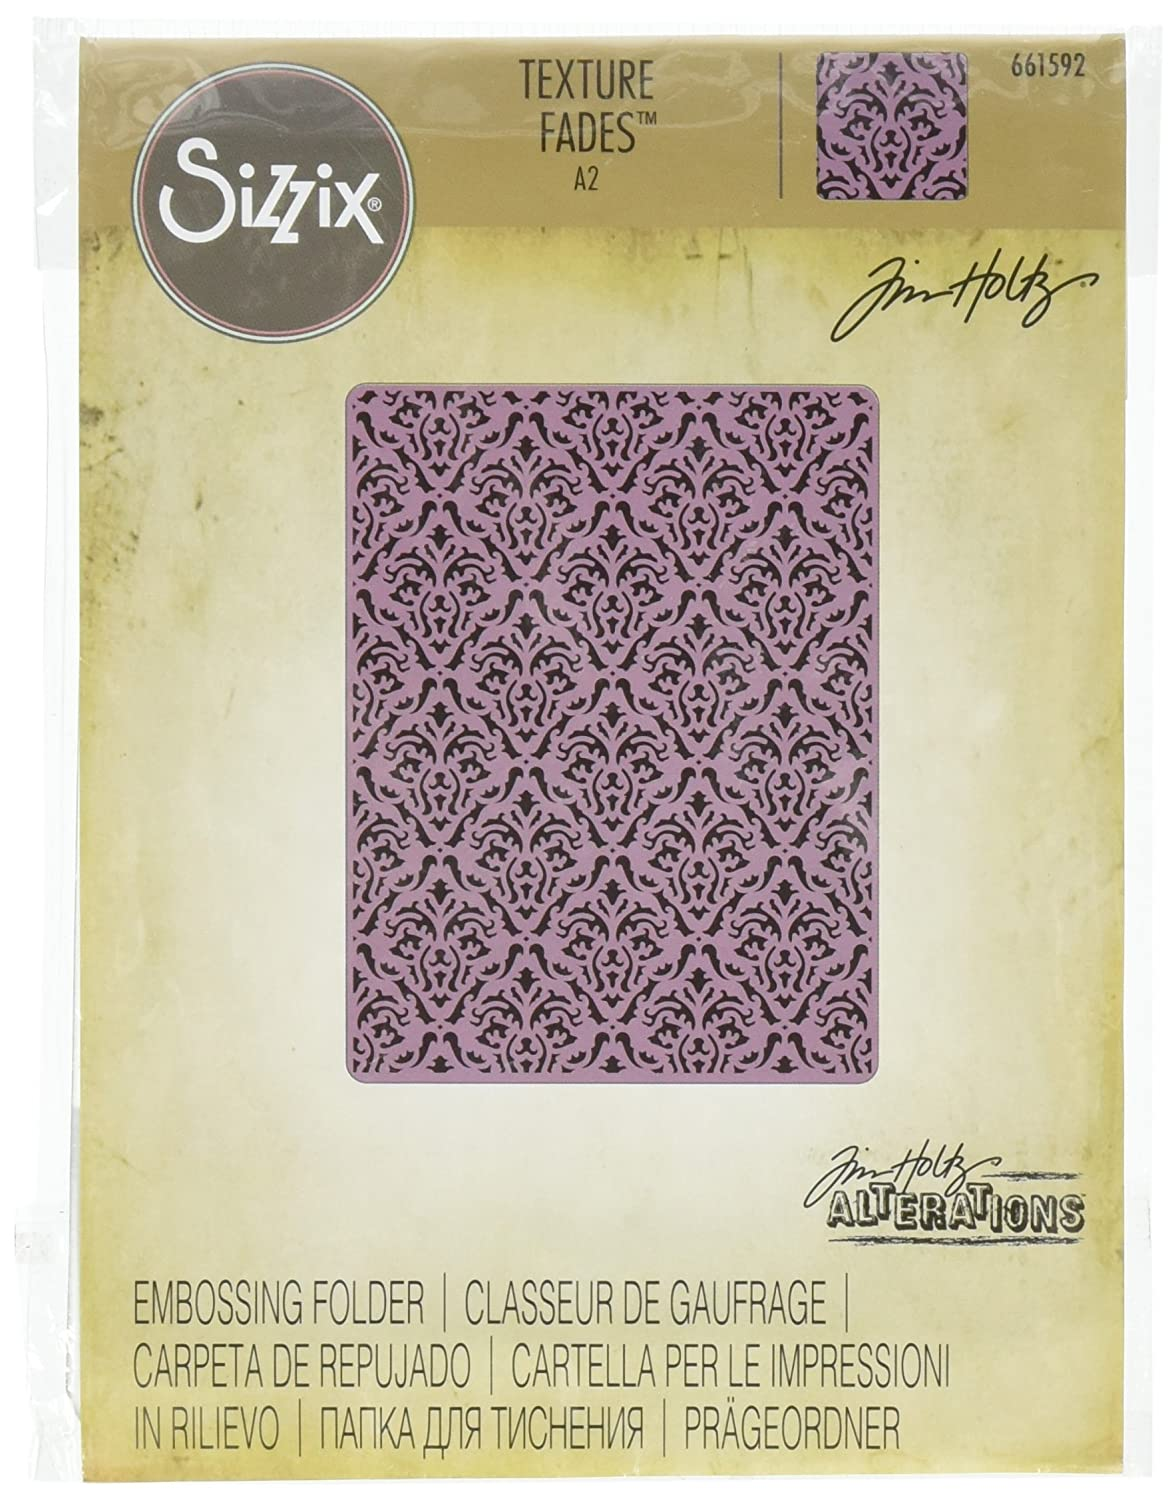 Sizzix 661592 Texture Fades Embossing Folder, Damask by Tim Holtz Ellison